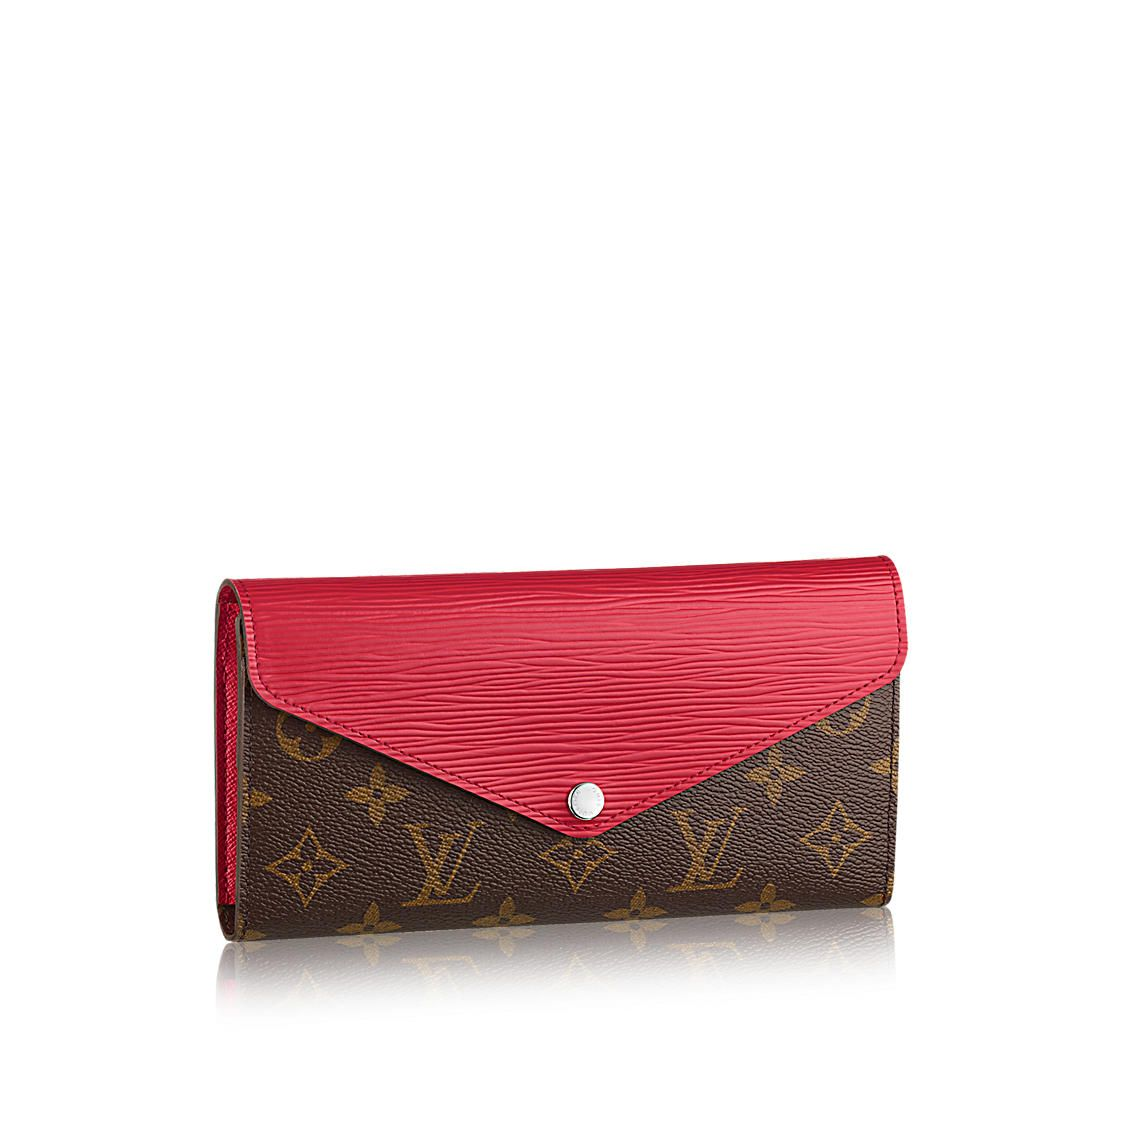 3d83e6b569f0 LOUISVUITTON.COM - Louis Vuitton Small Leather Goods Long Wallets ...